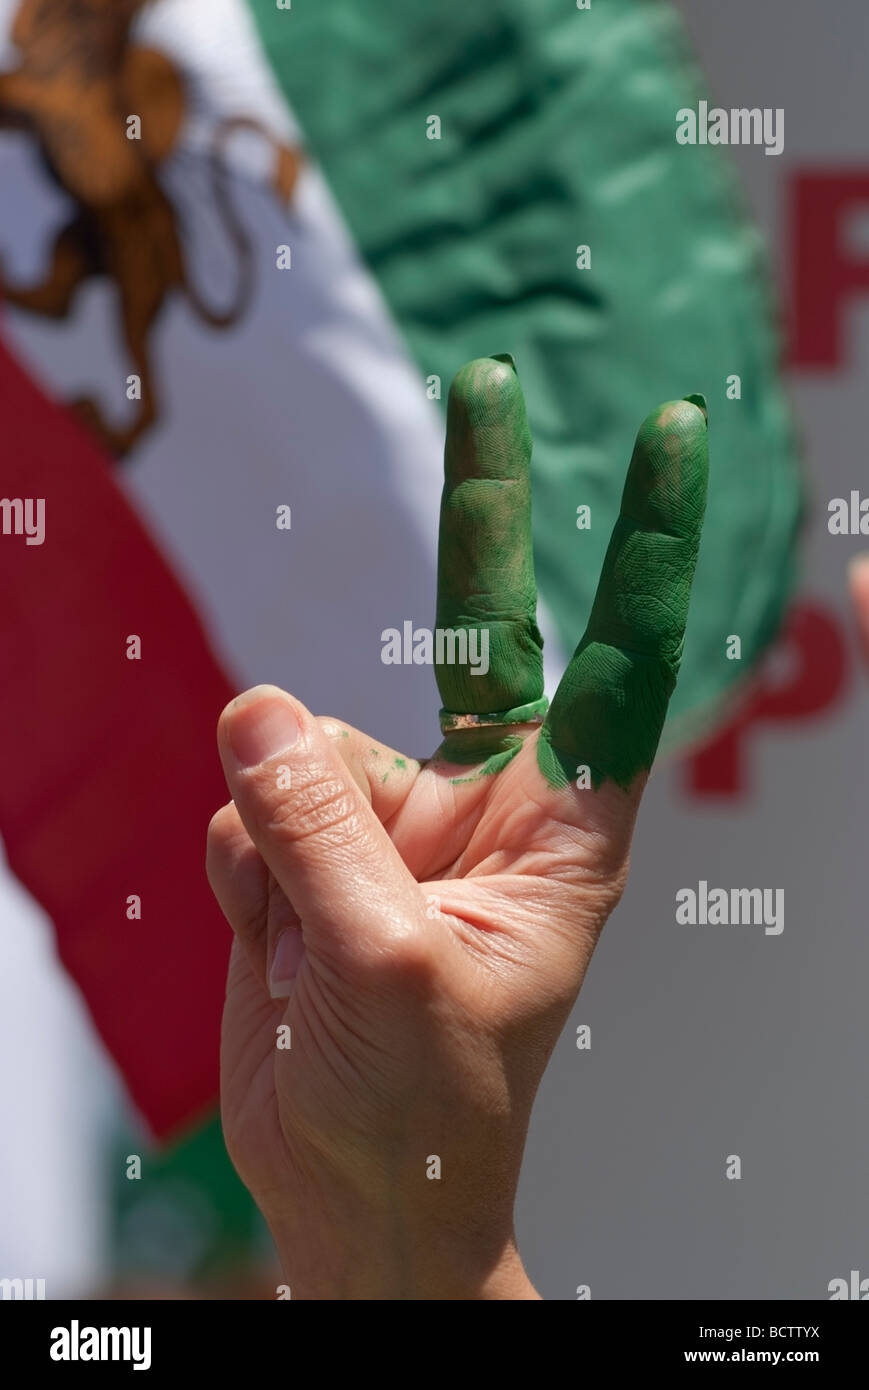 """Iranian woman's hand with two fingers painted green during a demonstration on the """"Global Day of Action"""", San Francisco, - Stock Image"""